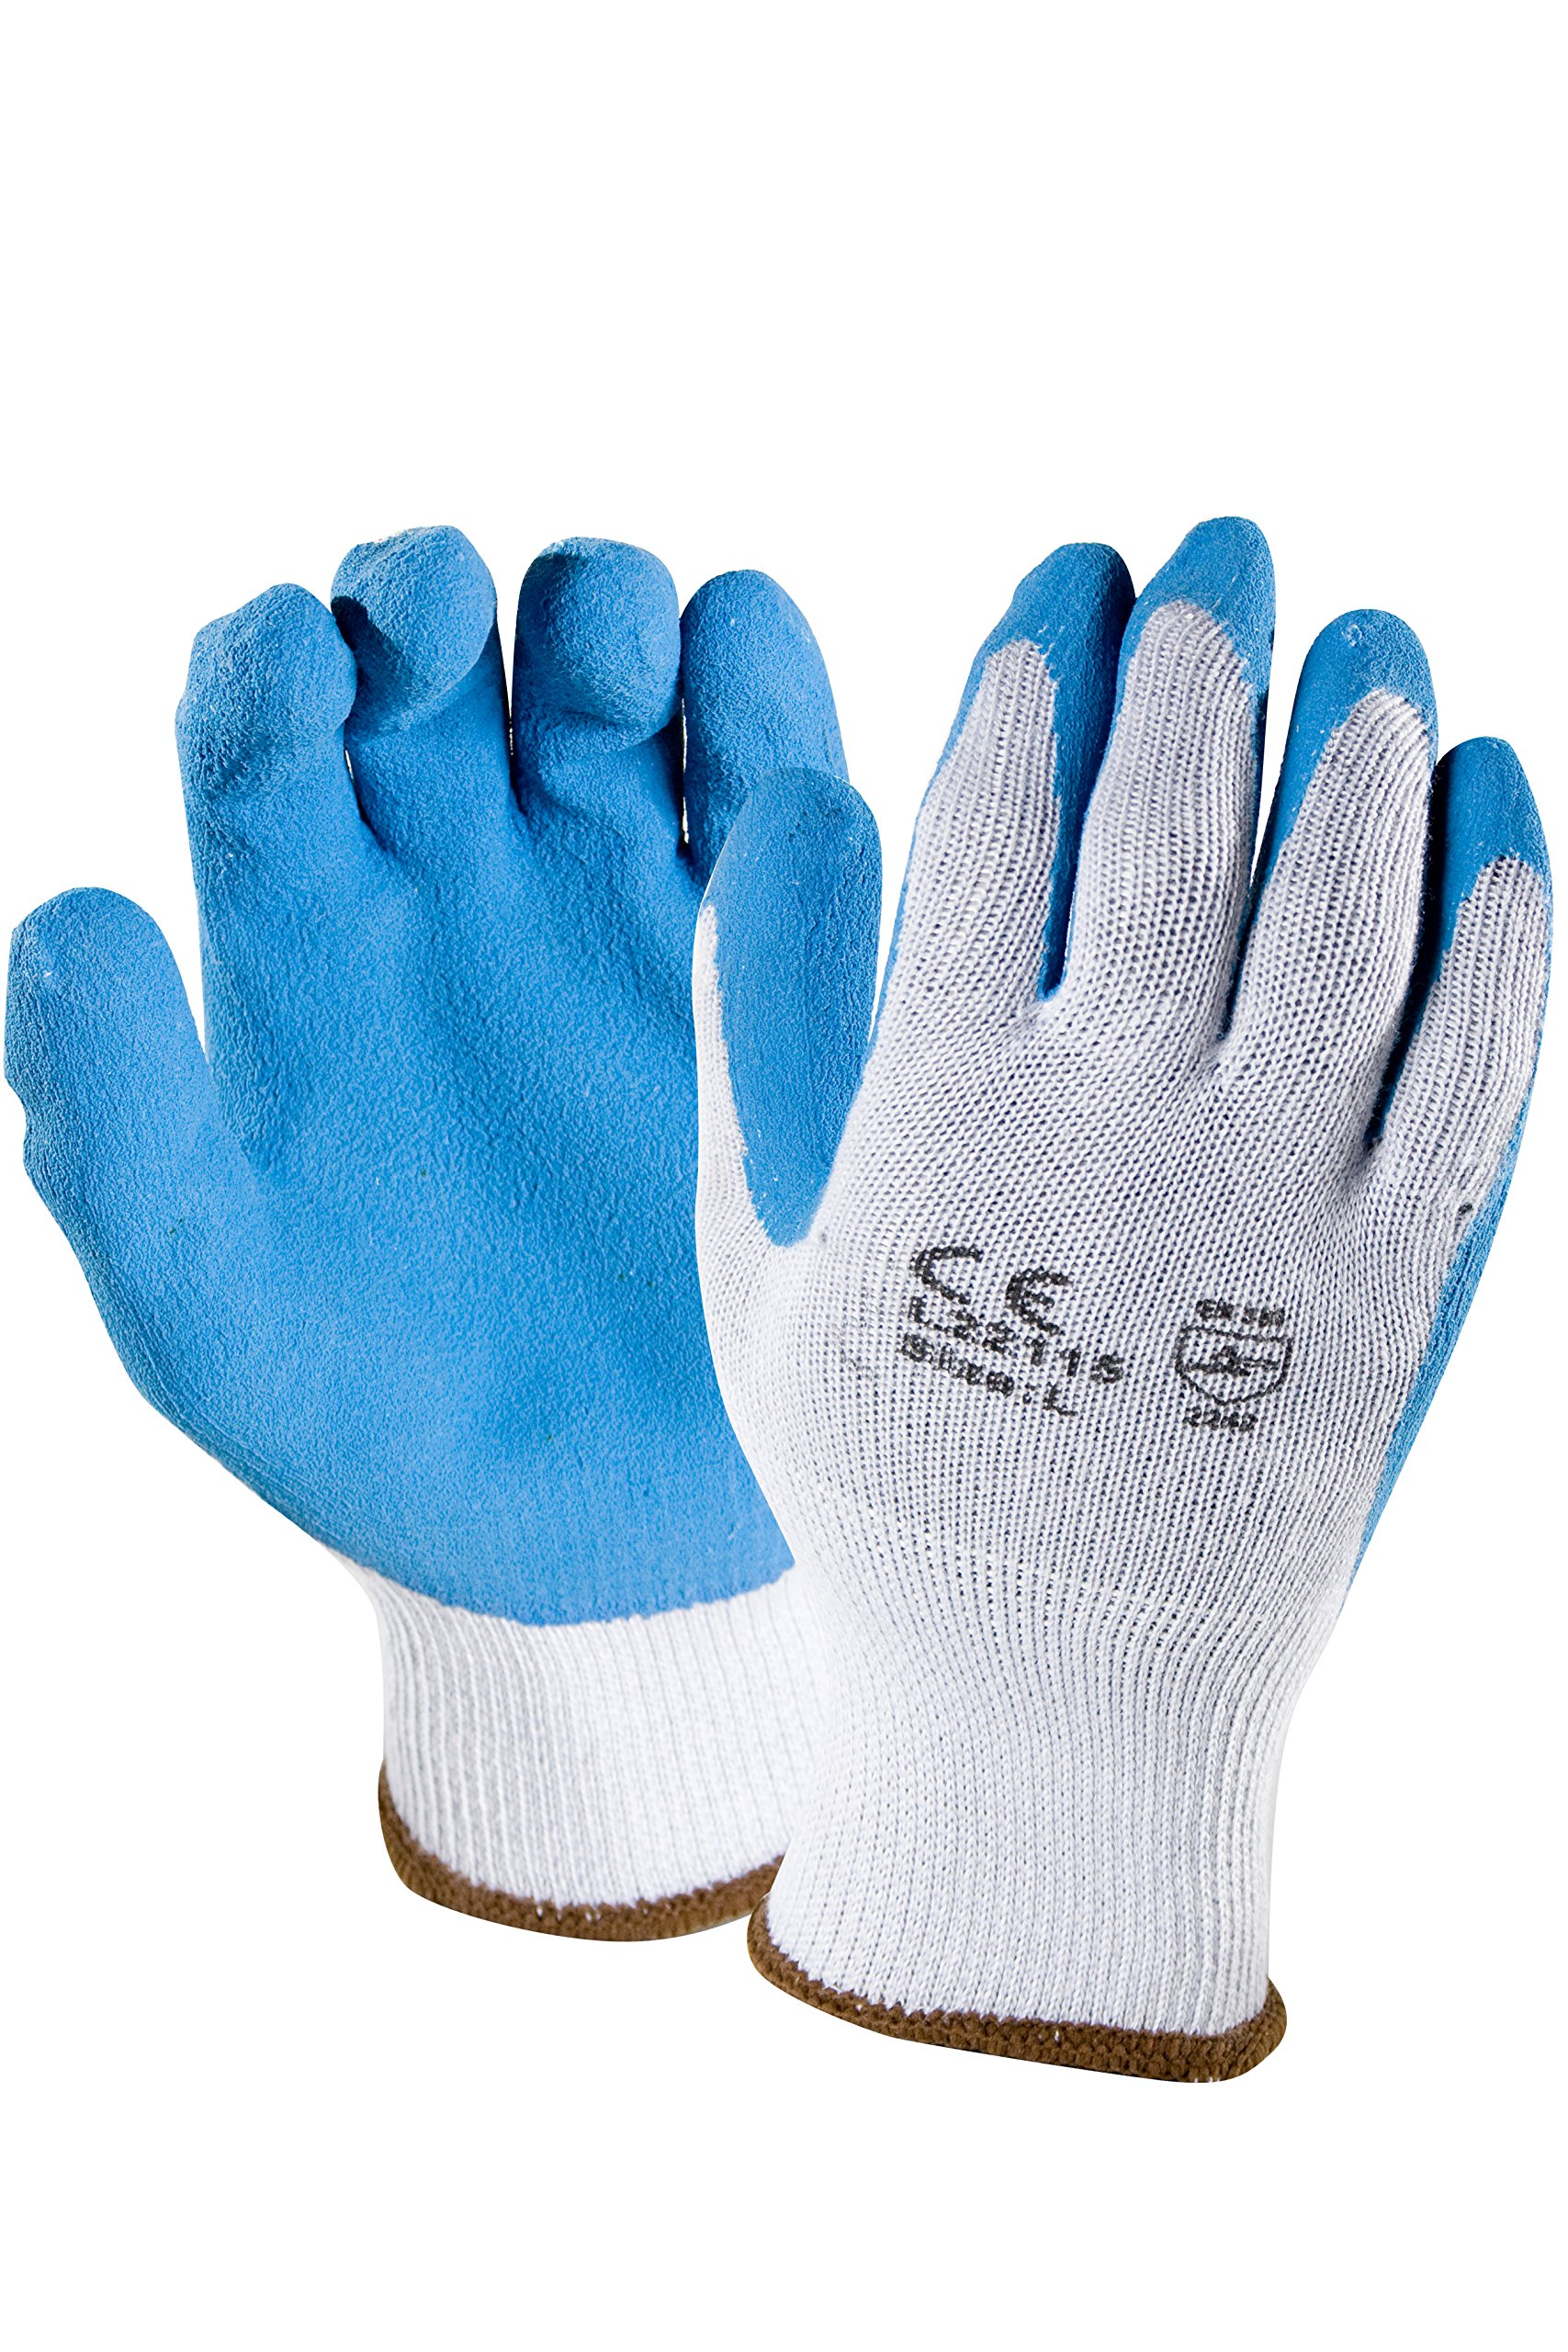 Azusa Safety L22115 10 gauge Knit Polyester/Cotton Work Safety Gloves, Latex Coated Textured Crinkle Finish Large 9'', Blue/Gray (Pack of 12 Pairs)